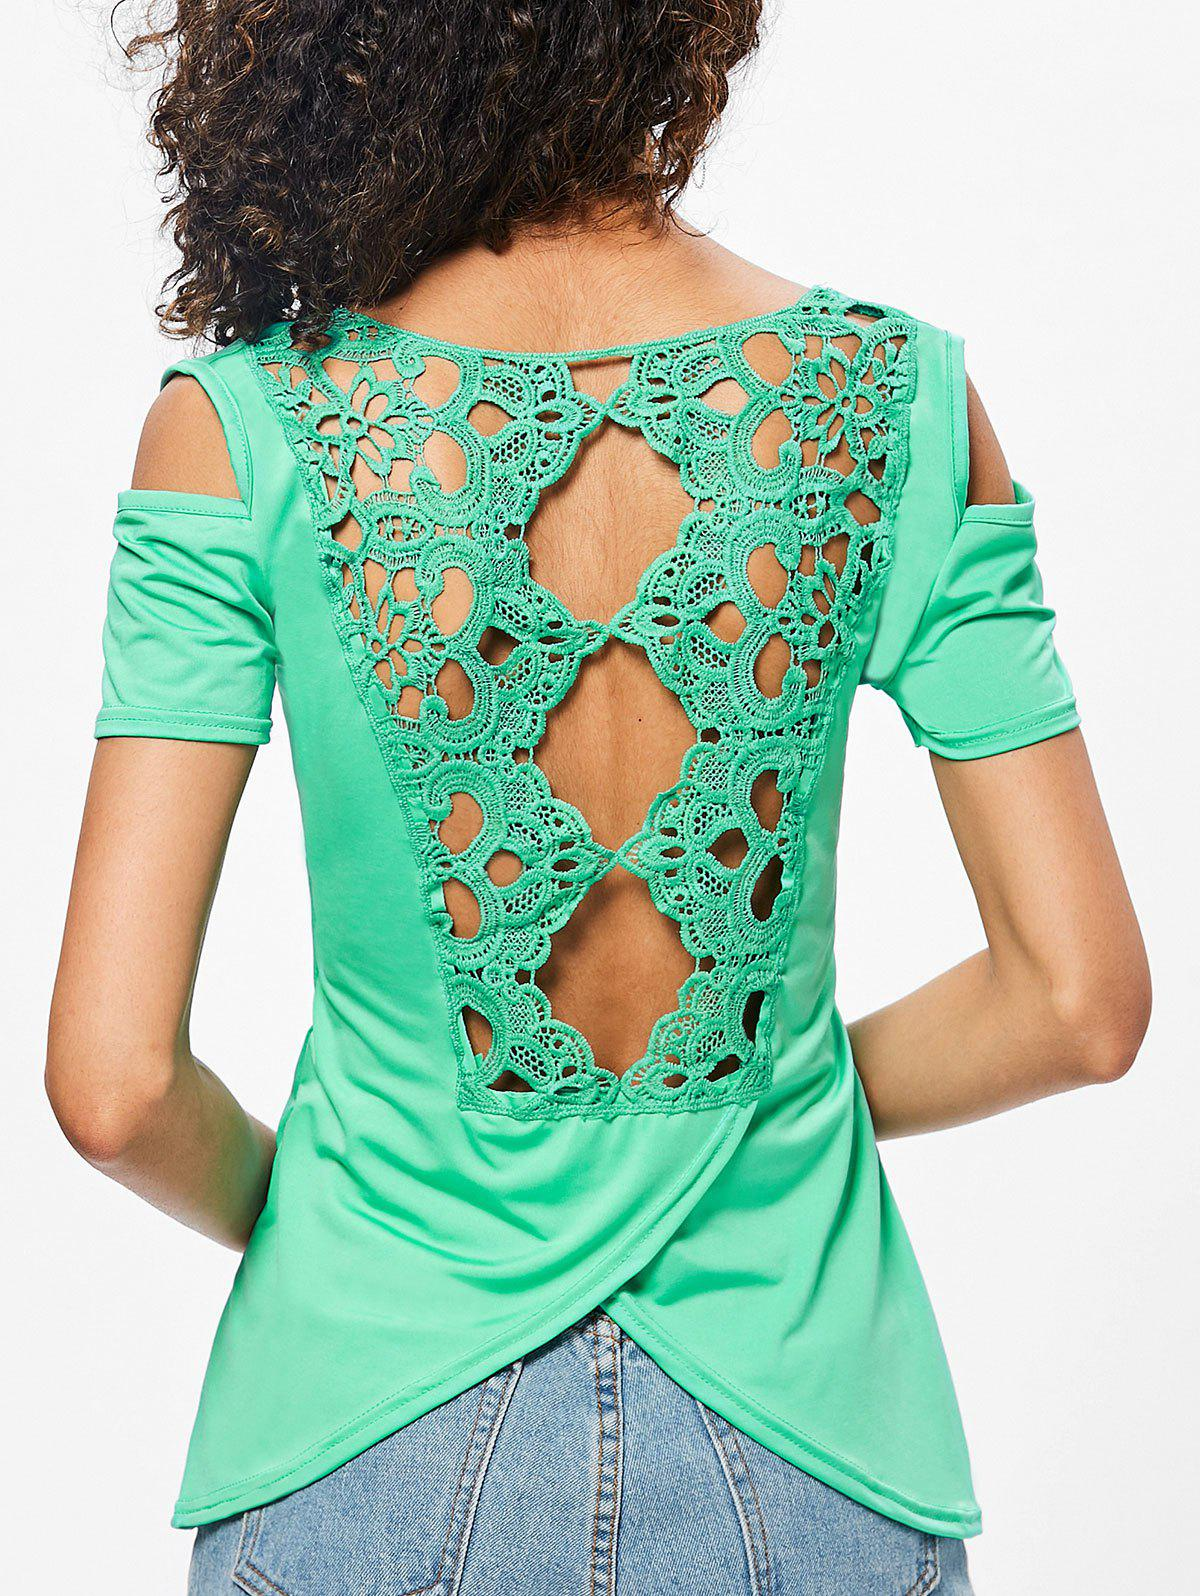 Slit Back Lace Panel T-shirt lace trim back slit t shirt